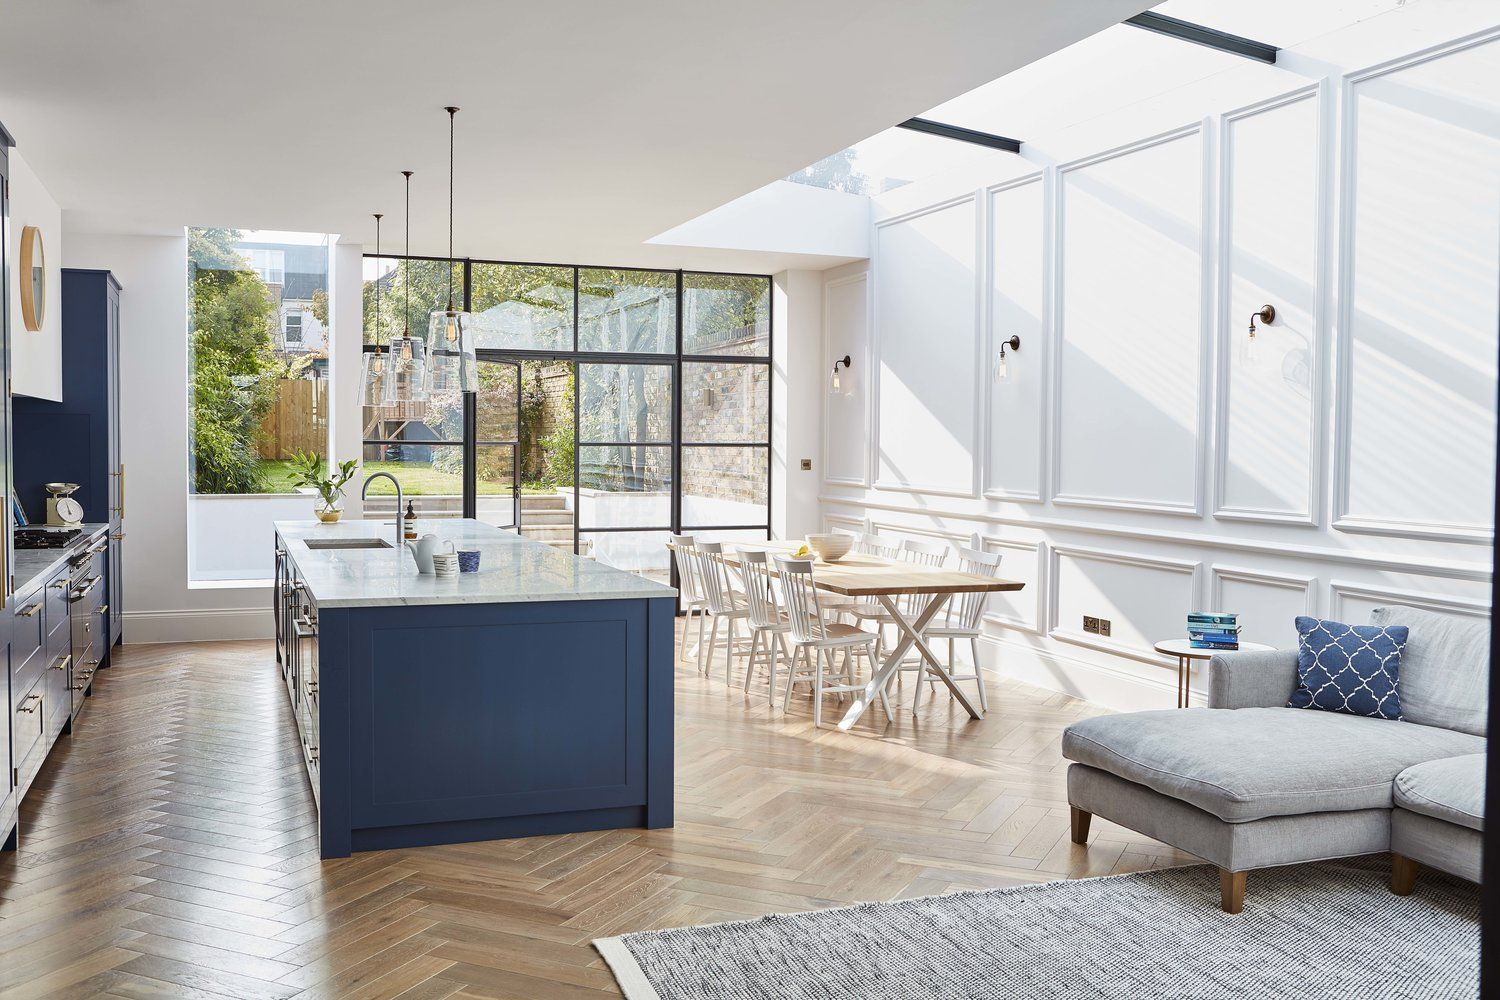 Kitchen Extension With Crittall Doors Herringbone Parquet Flooring Blue Cabinets And Brass Hardware Open Plan Kitchen Living Room New Homes House